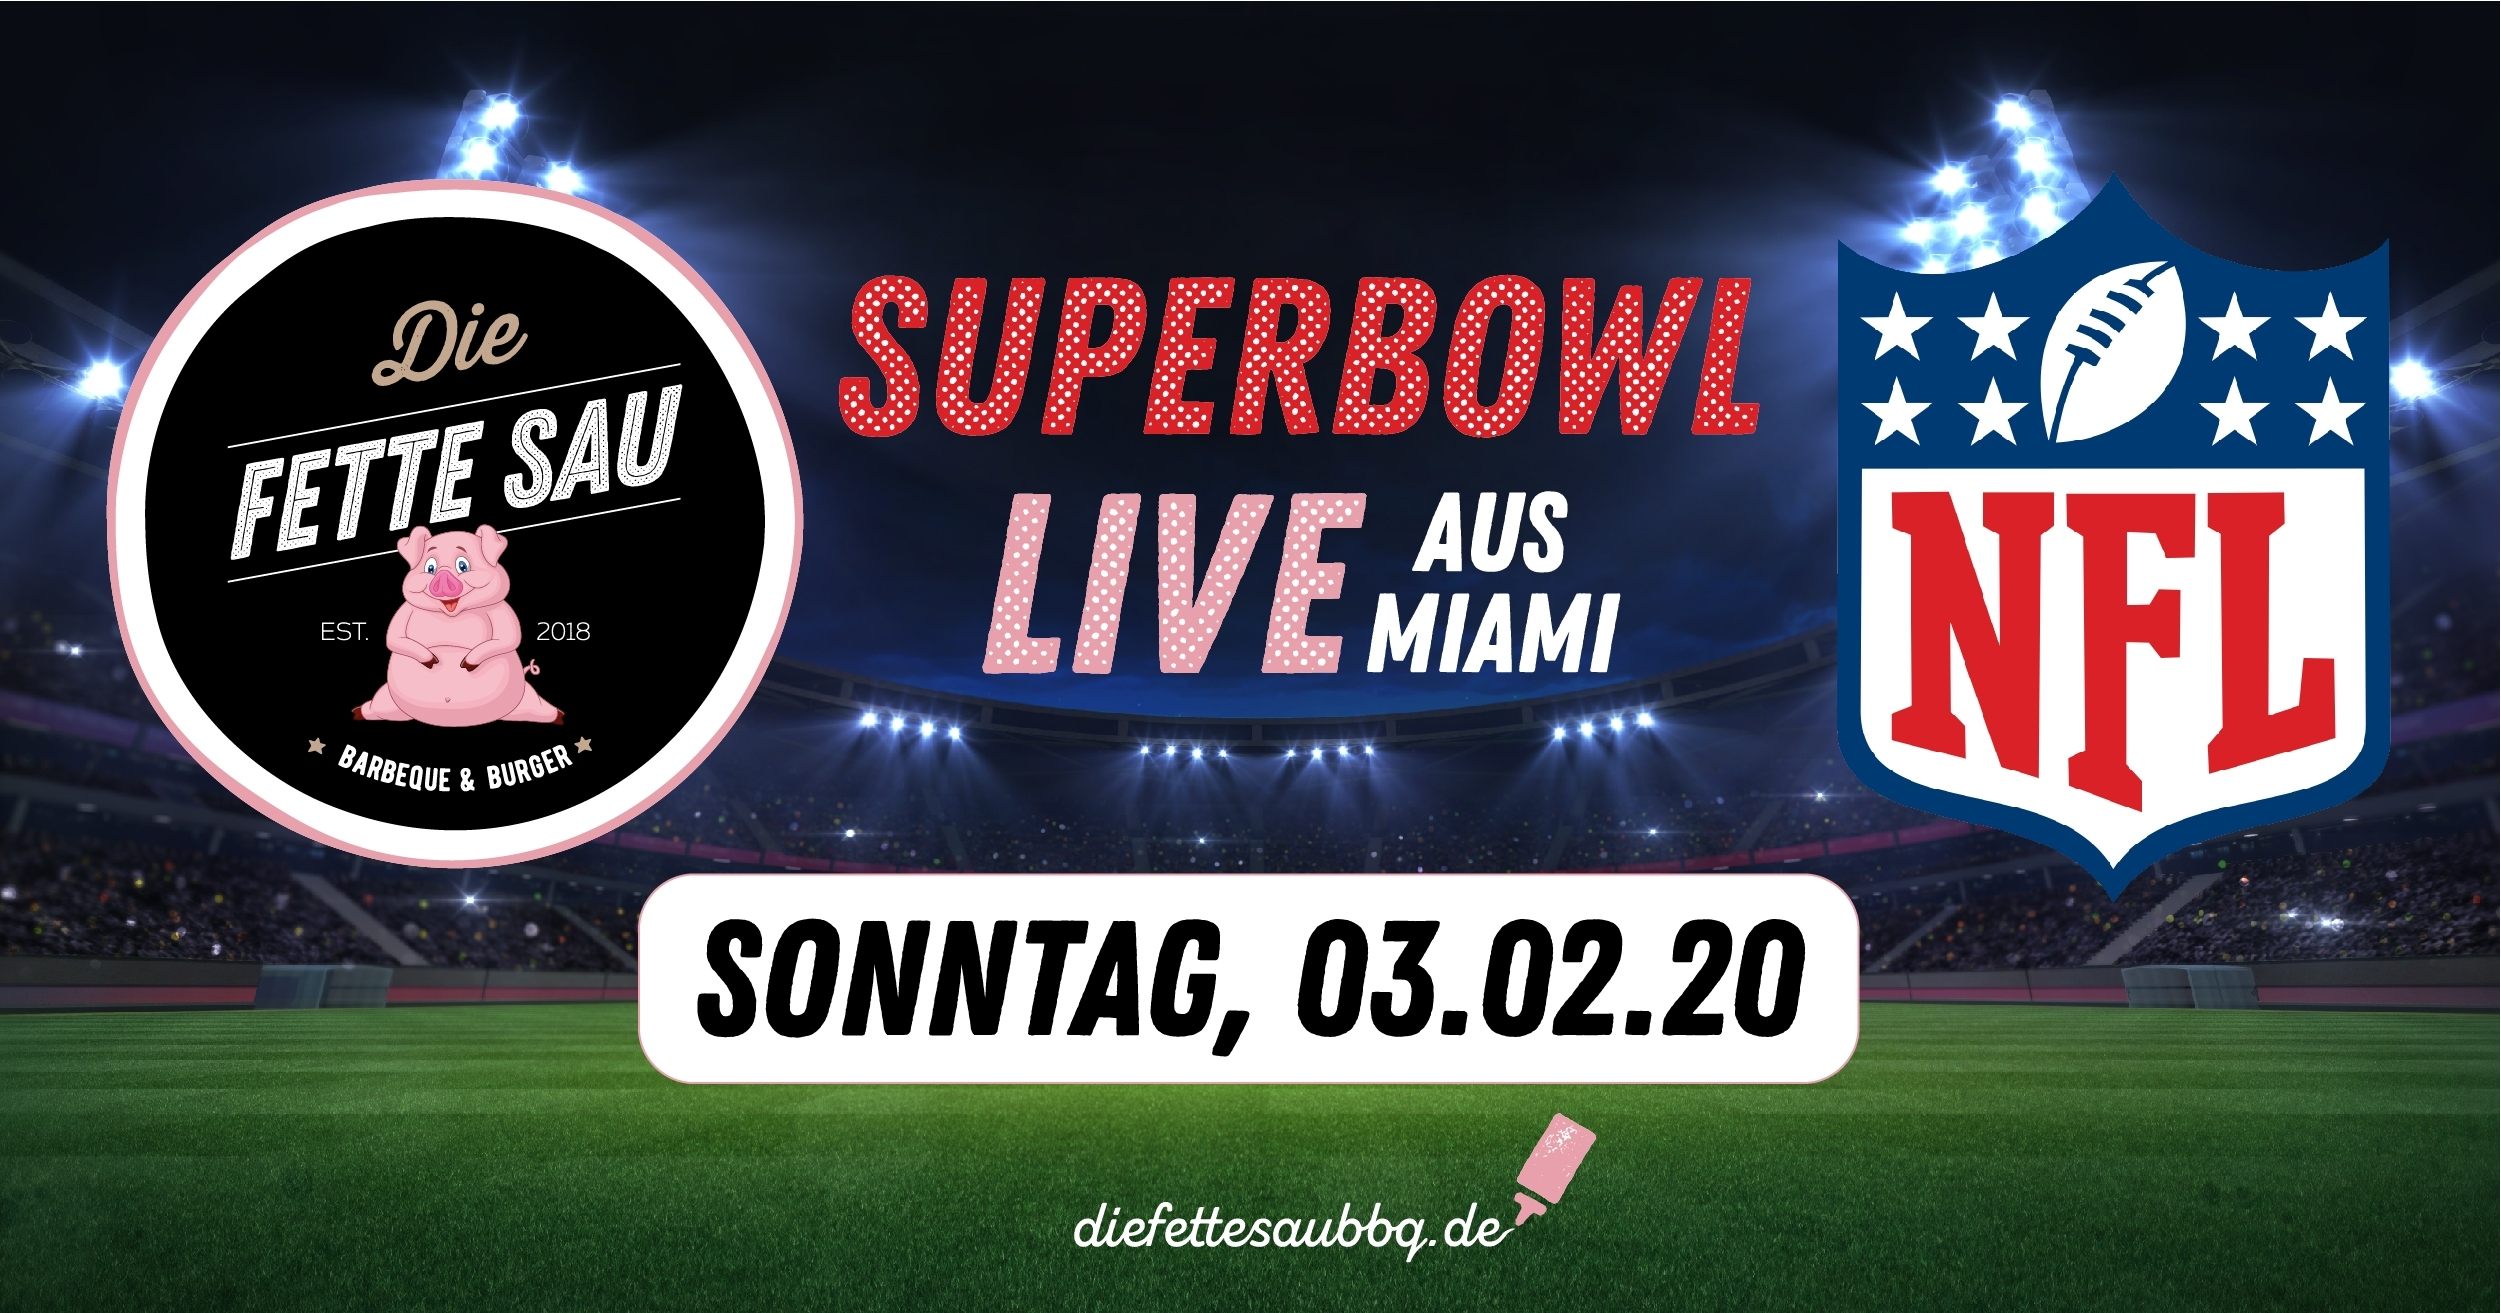 Superbowl 2020 Live Aus Miami! with Super Bowl Time Miami